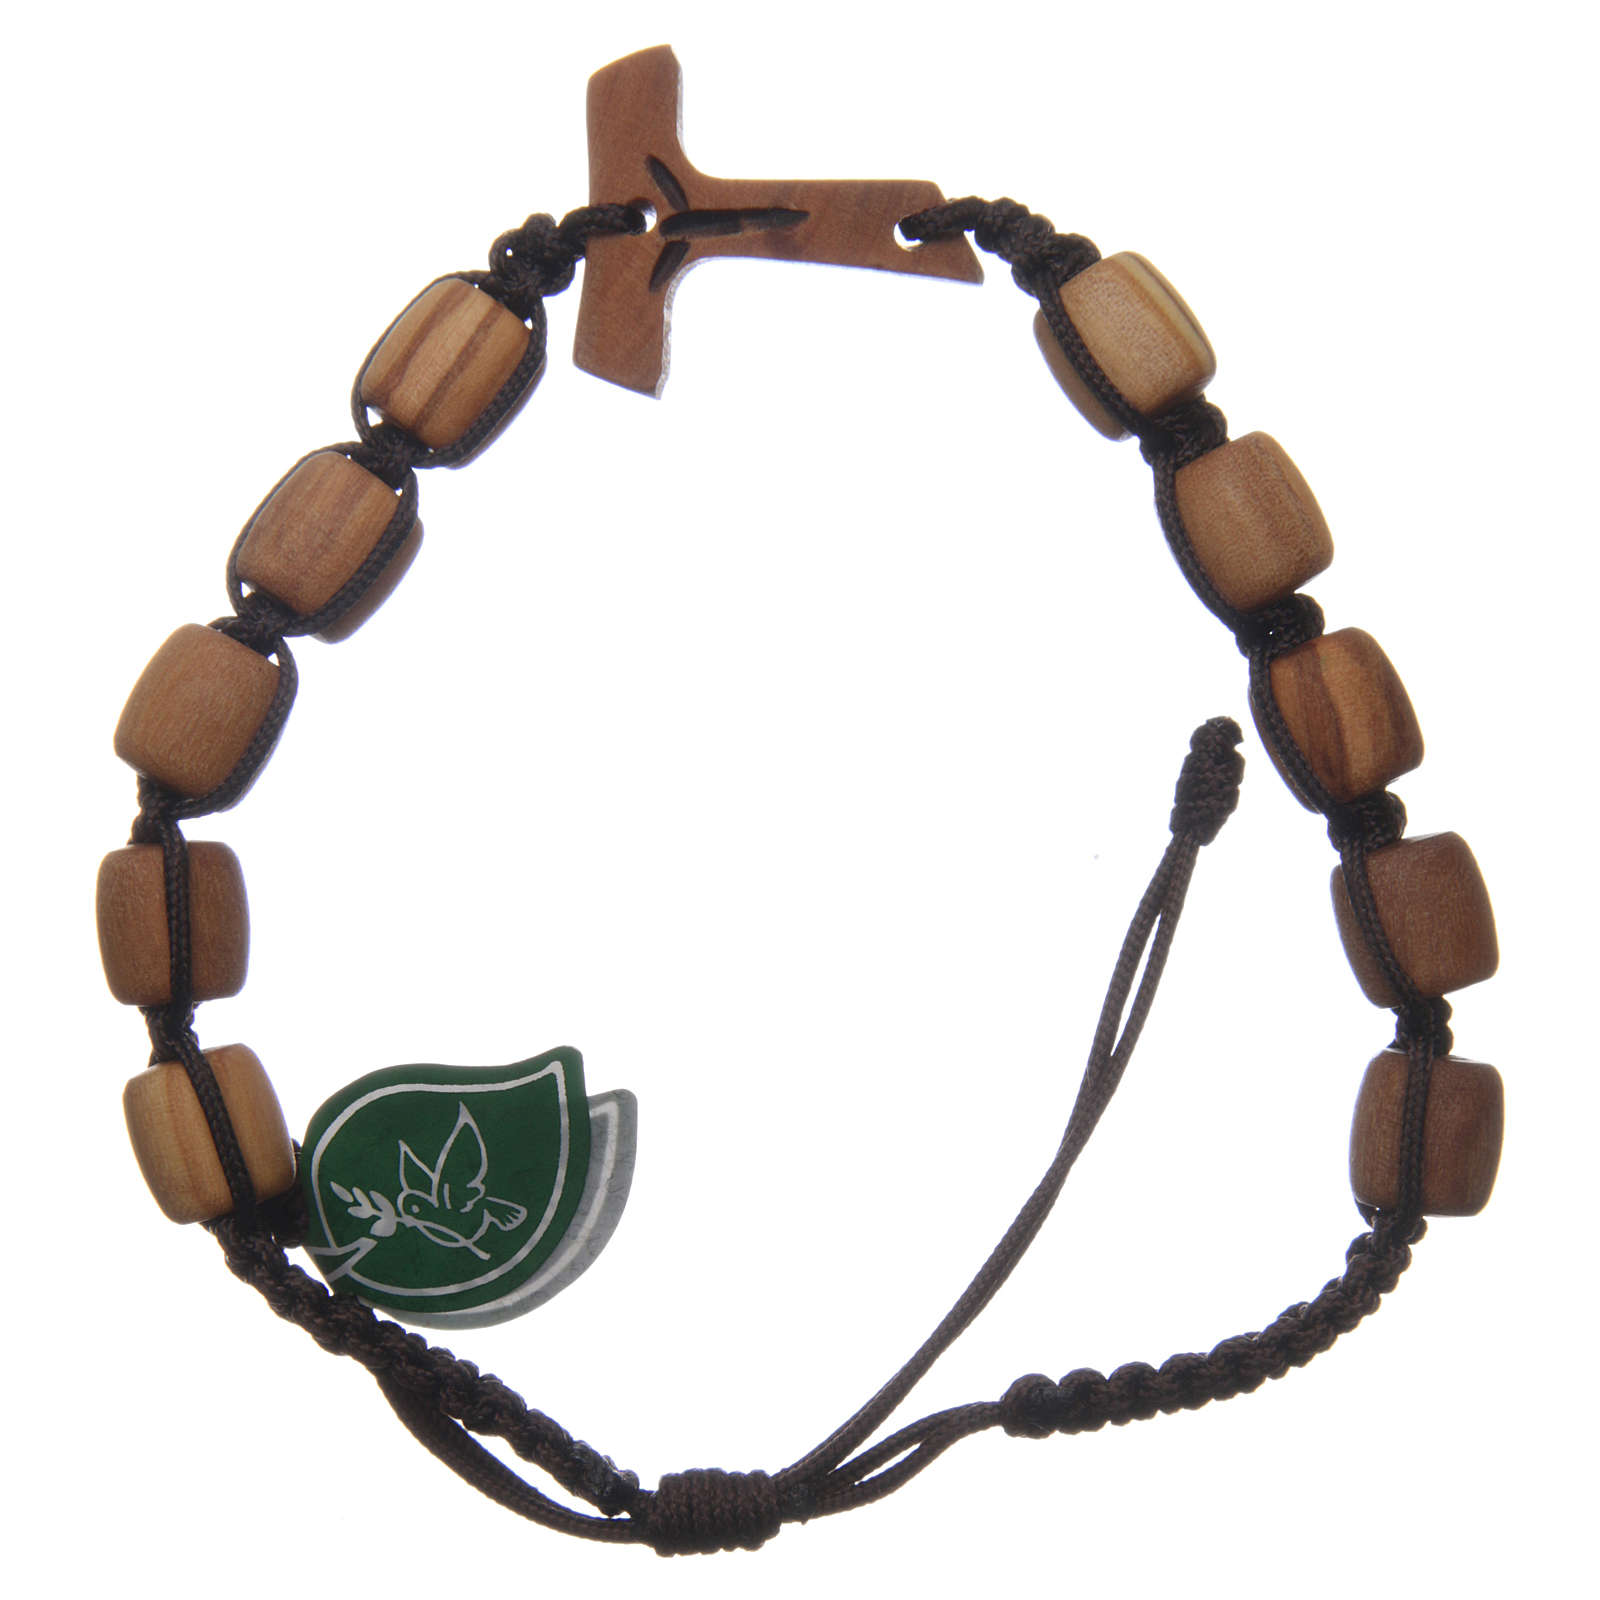 Medjugorje single decade bracelet with Tau cross and olive wood grains in brown cord 4